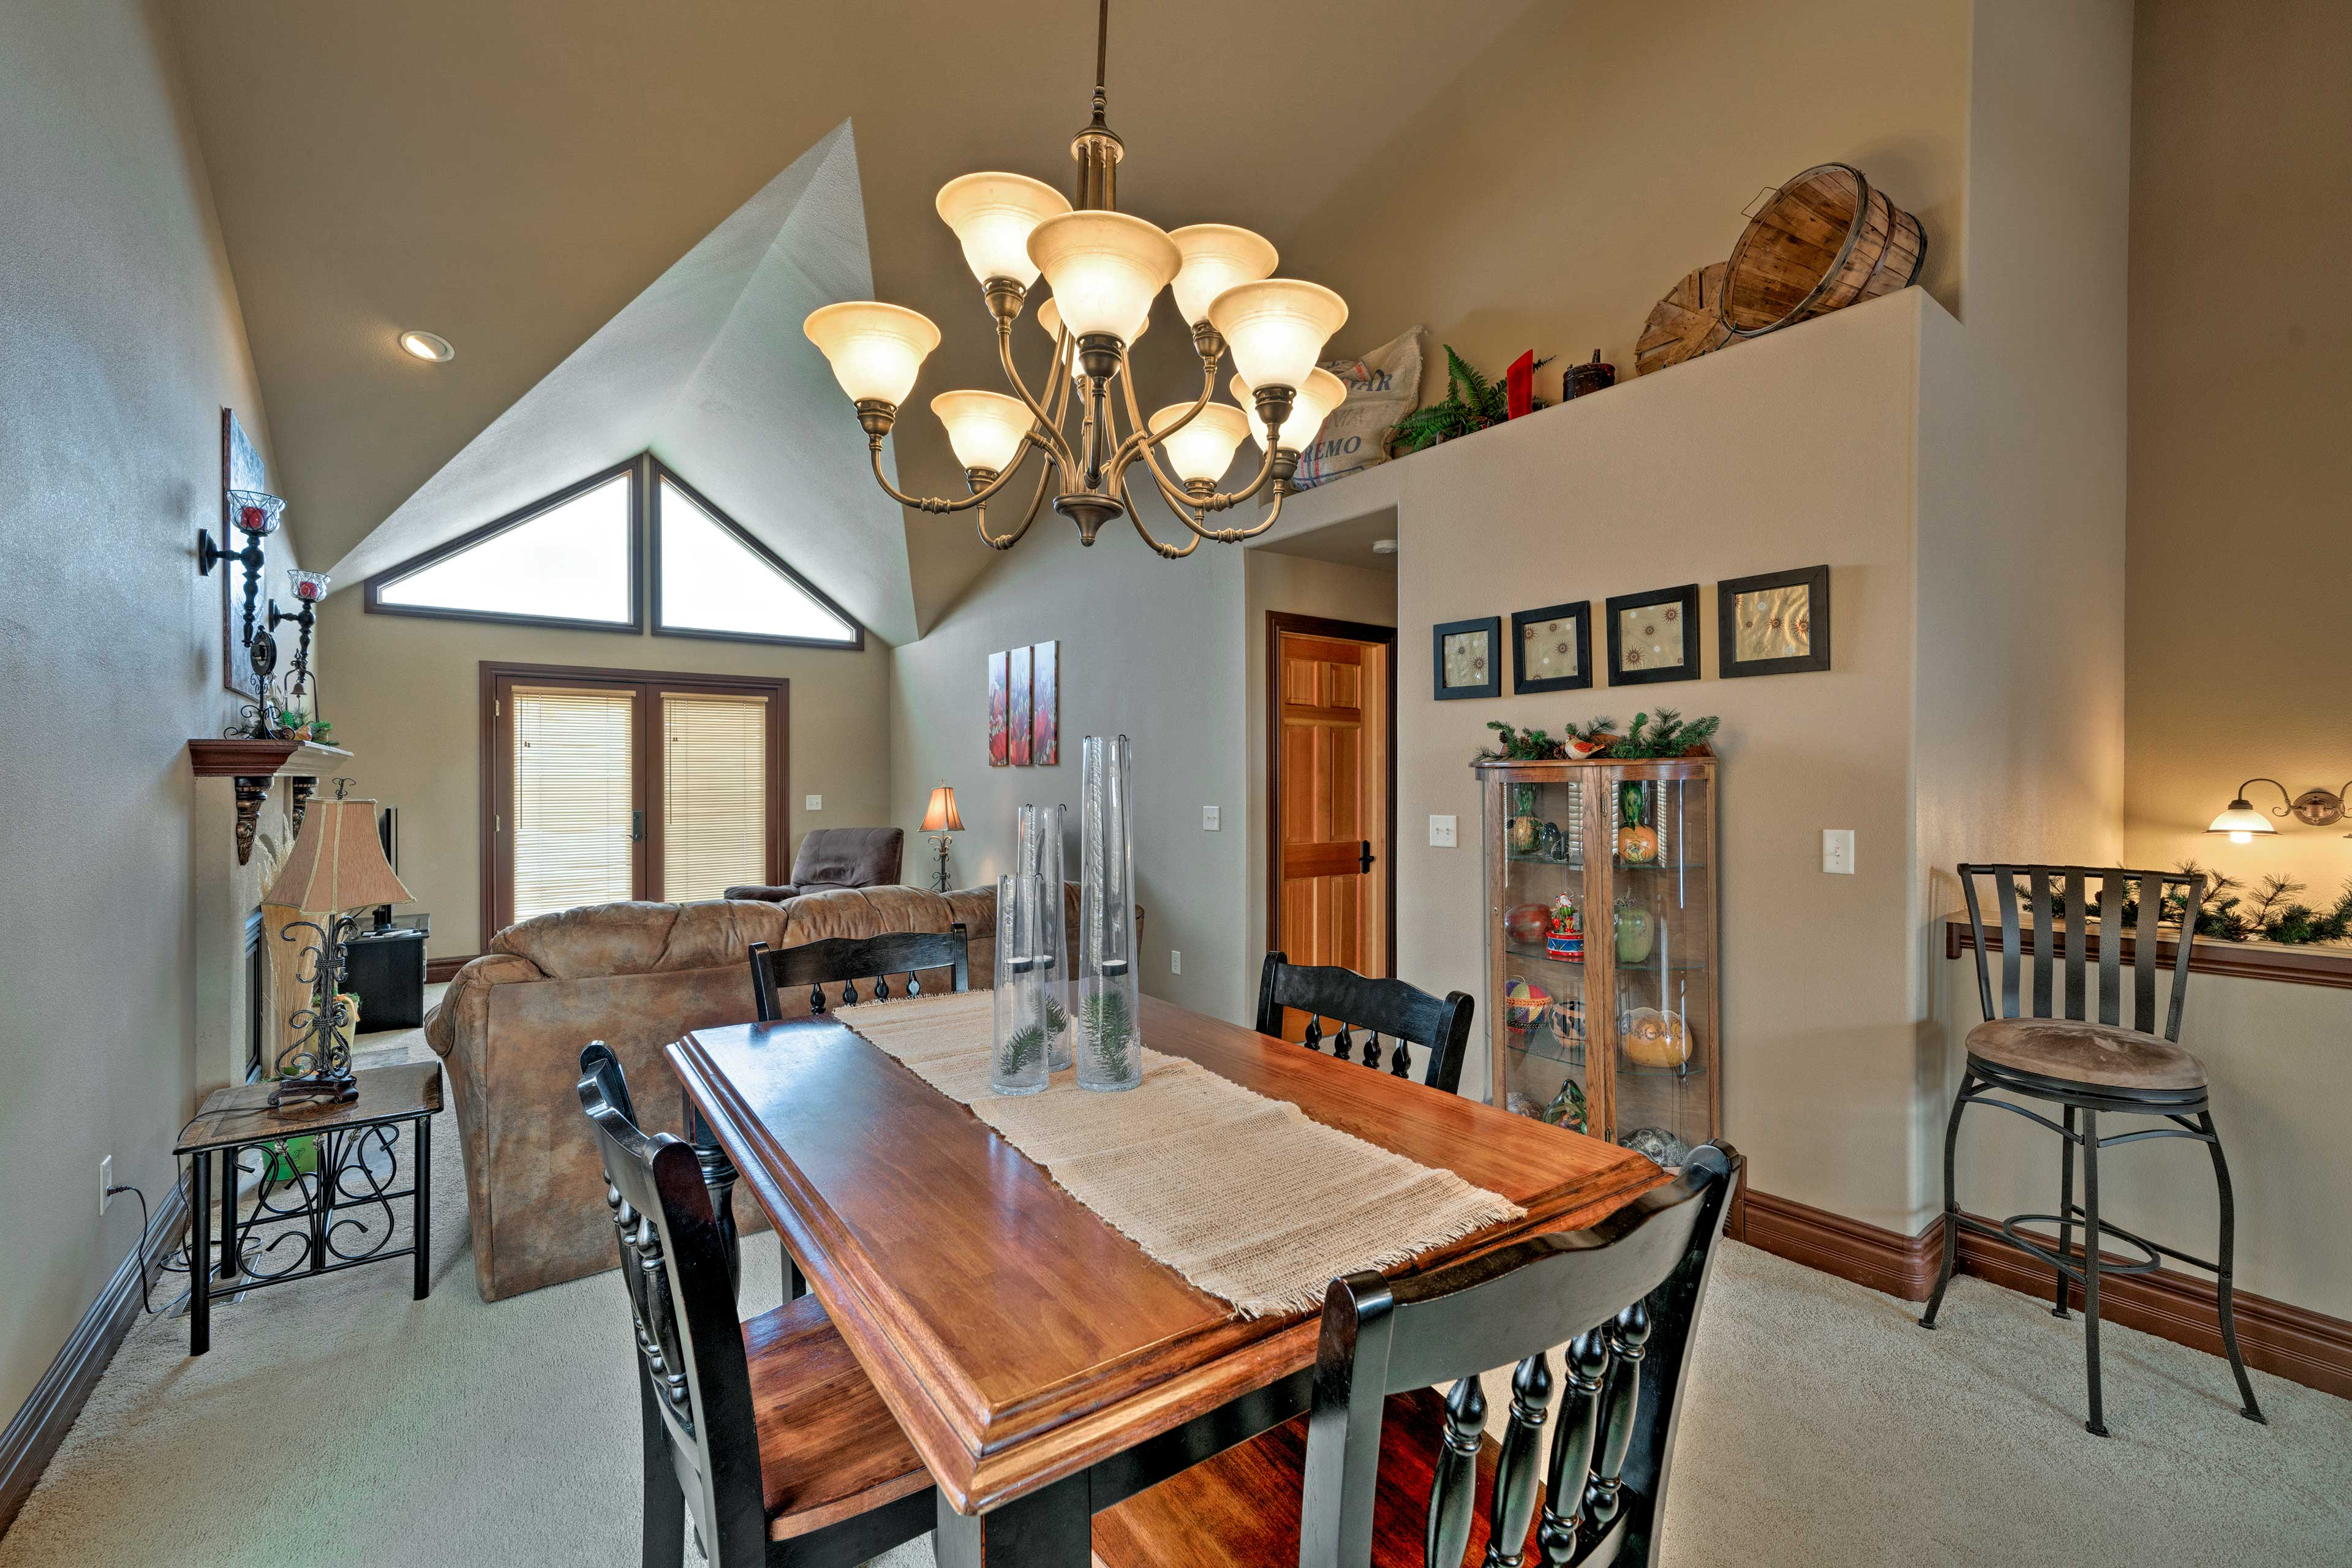 Step from the living room into the dining area when your meals are ready.